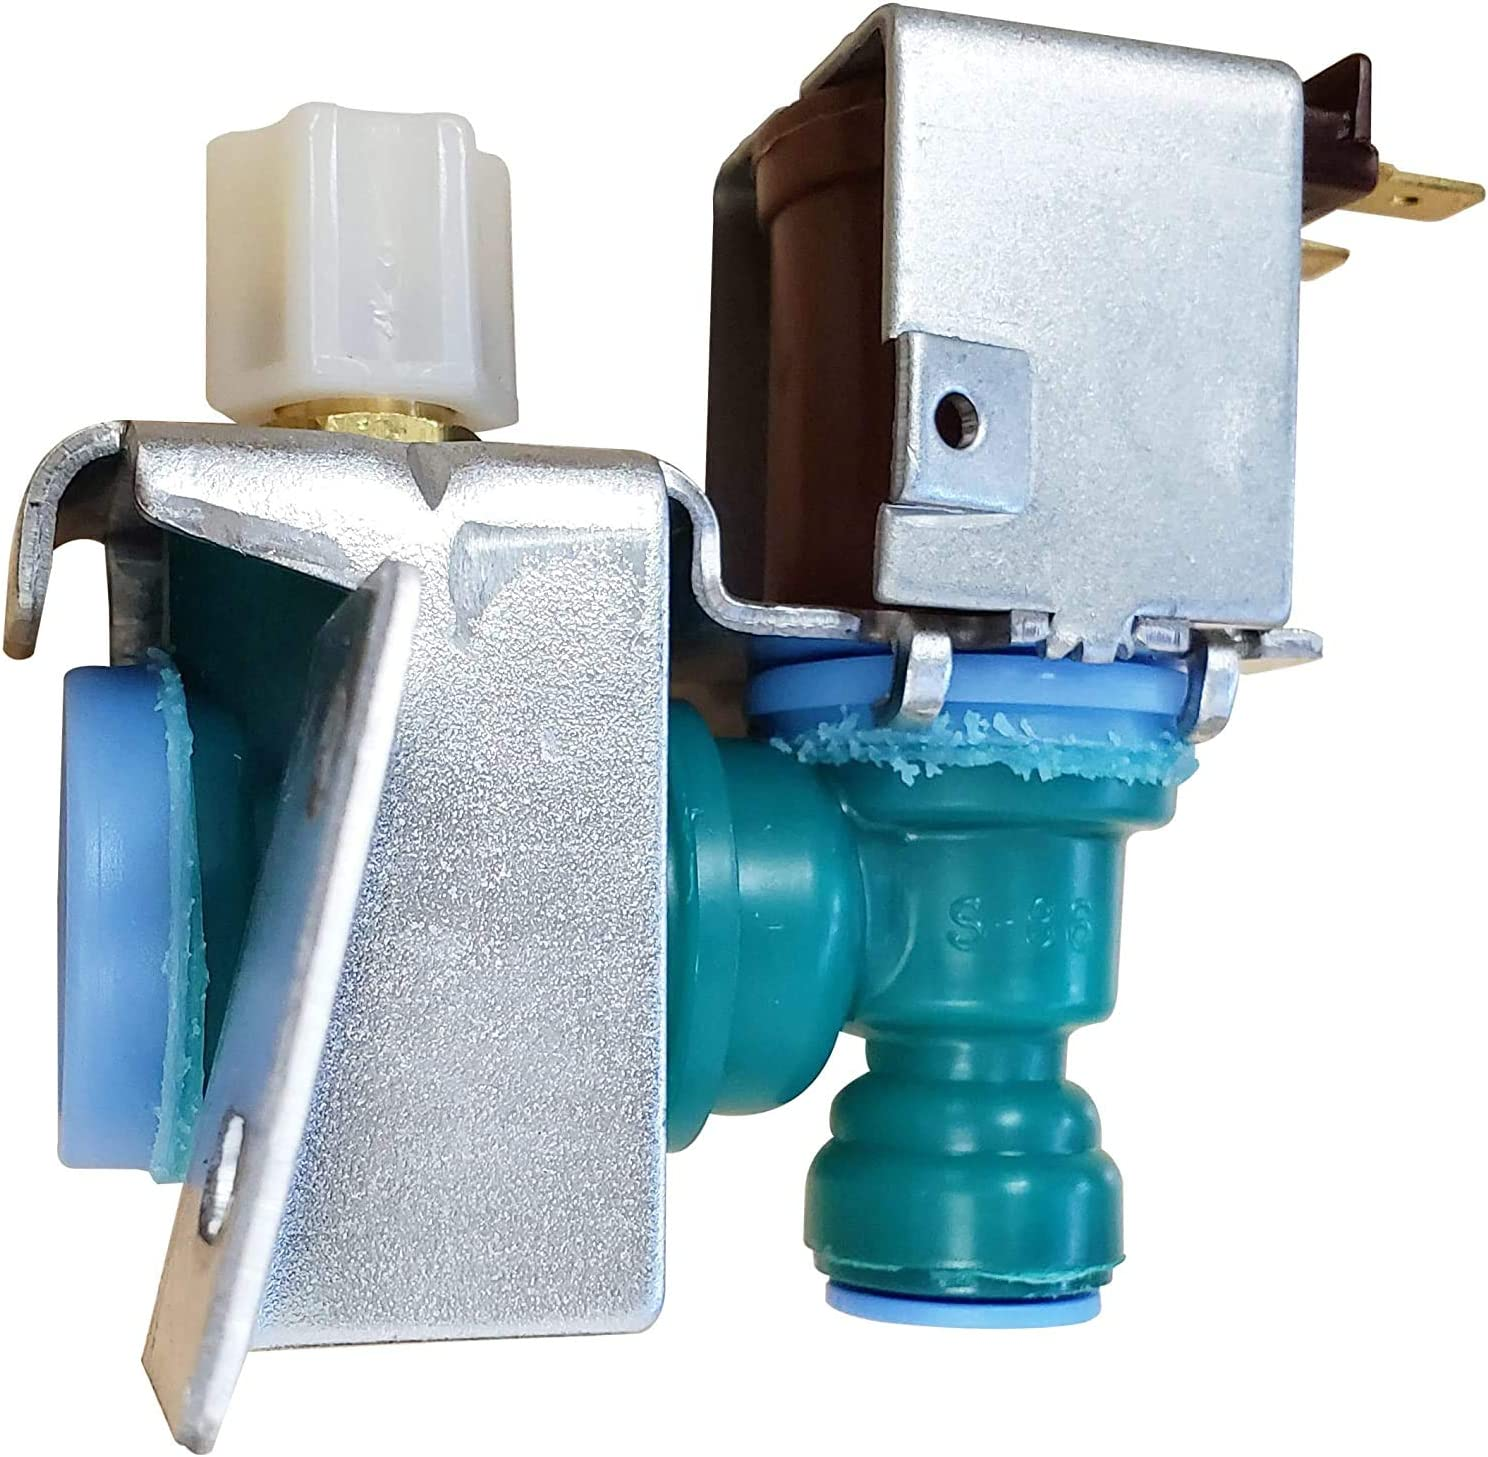 Krooli W10238100 WPW10238100 AP6017532 PS11750831 Refrigerator Water Inlet Valve Replacement for Whirlpool